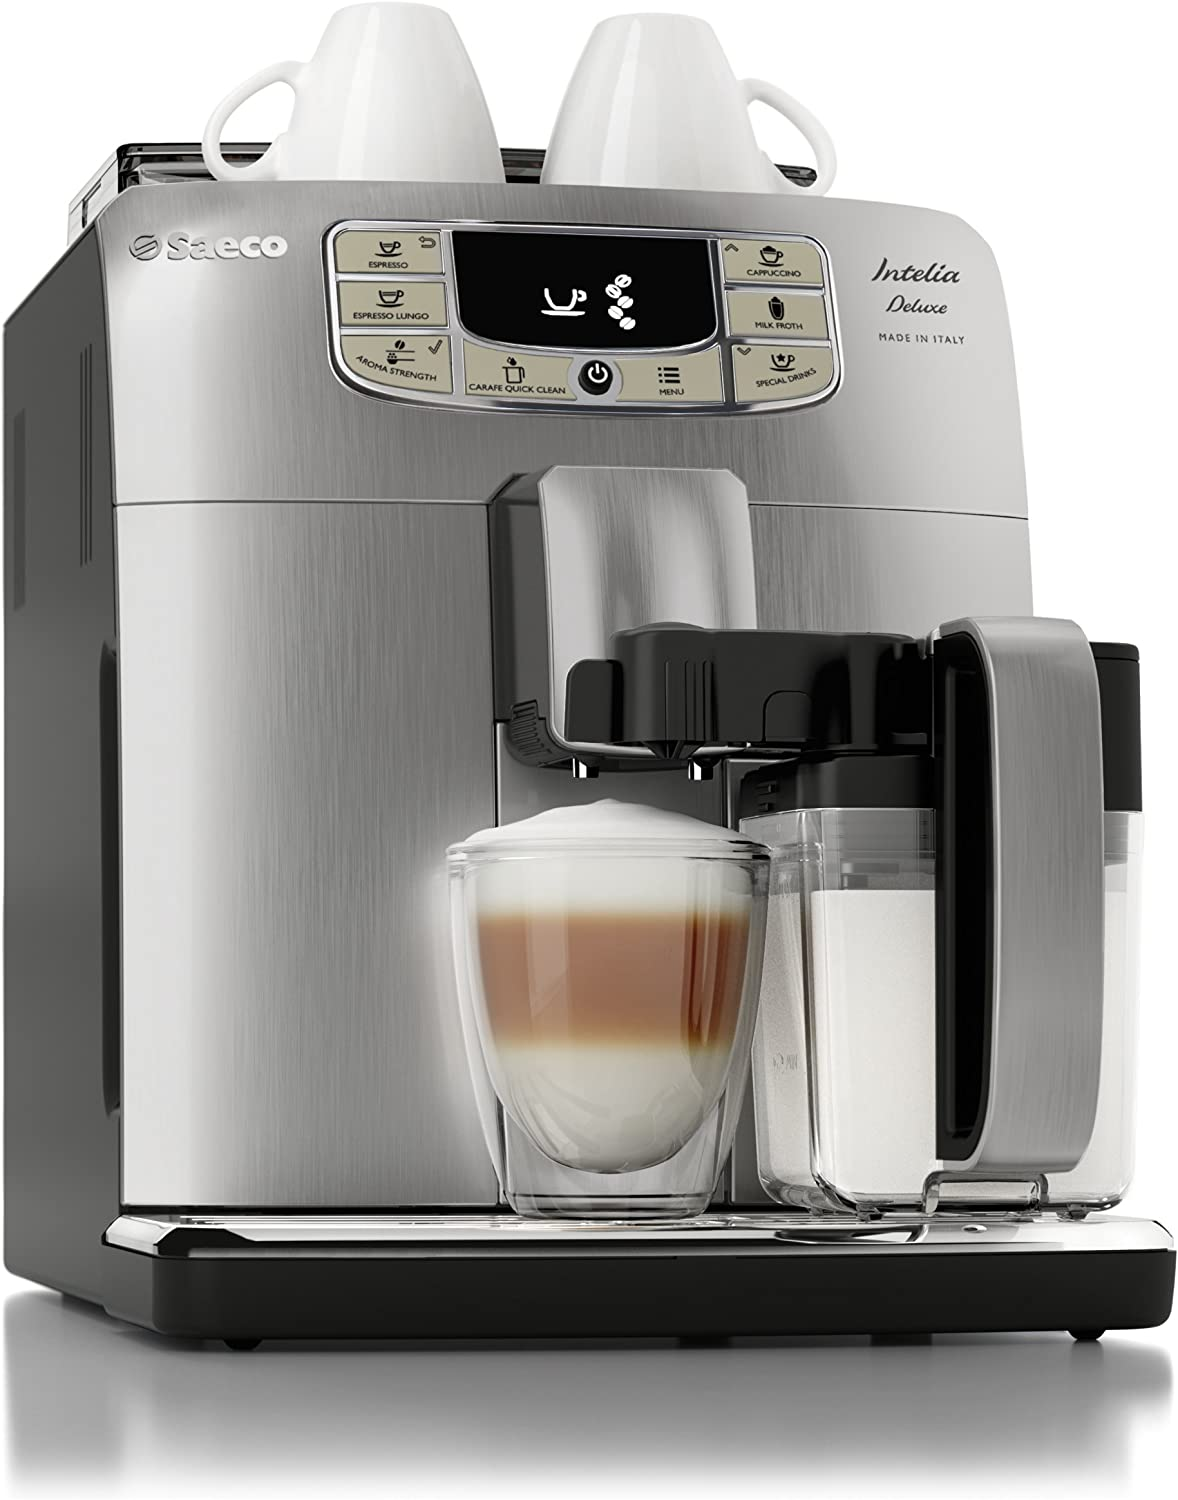 Saeco HD877193 Cafetera (Independiente, Máquina espresso, 1,5 L, Molinillo integrado, 1900 W, Acero inoxidable)